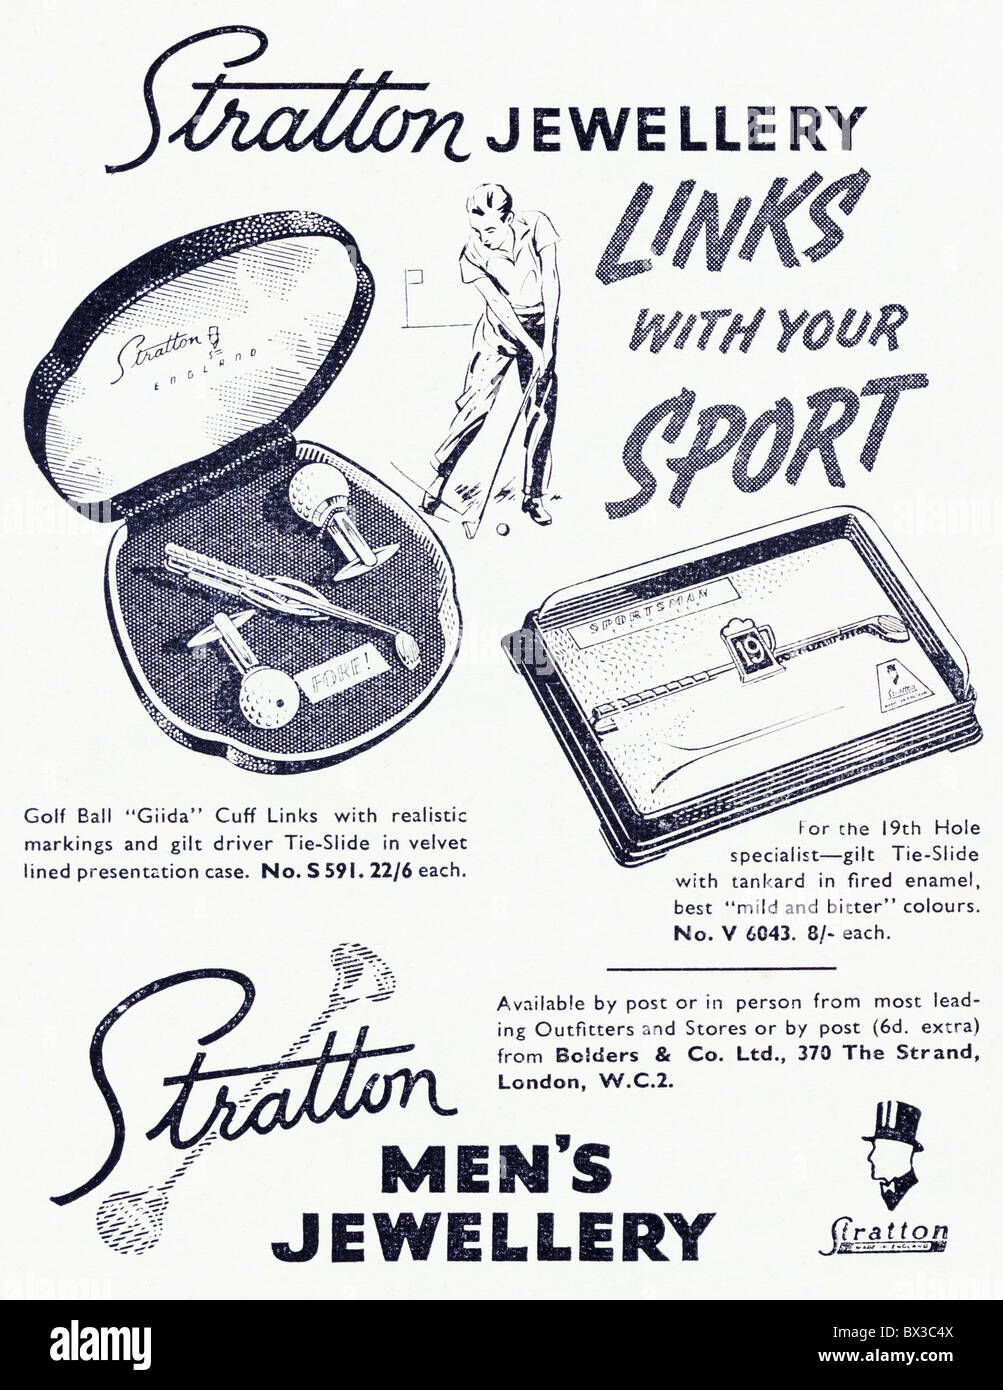 Stratton men's jewellery black and white advert in Punch magazine circa 1958 - Stock Image